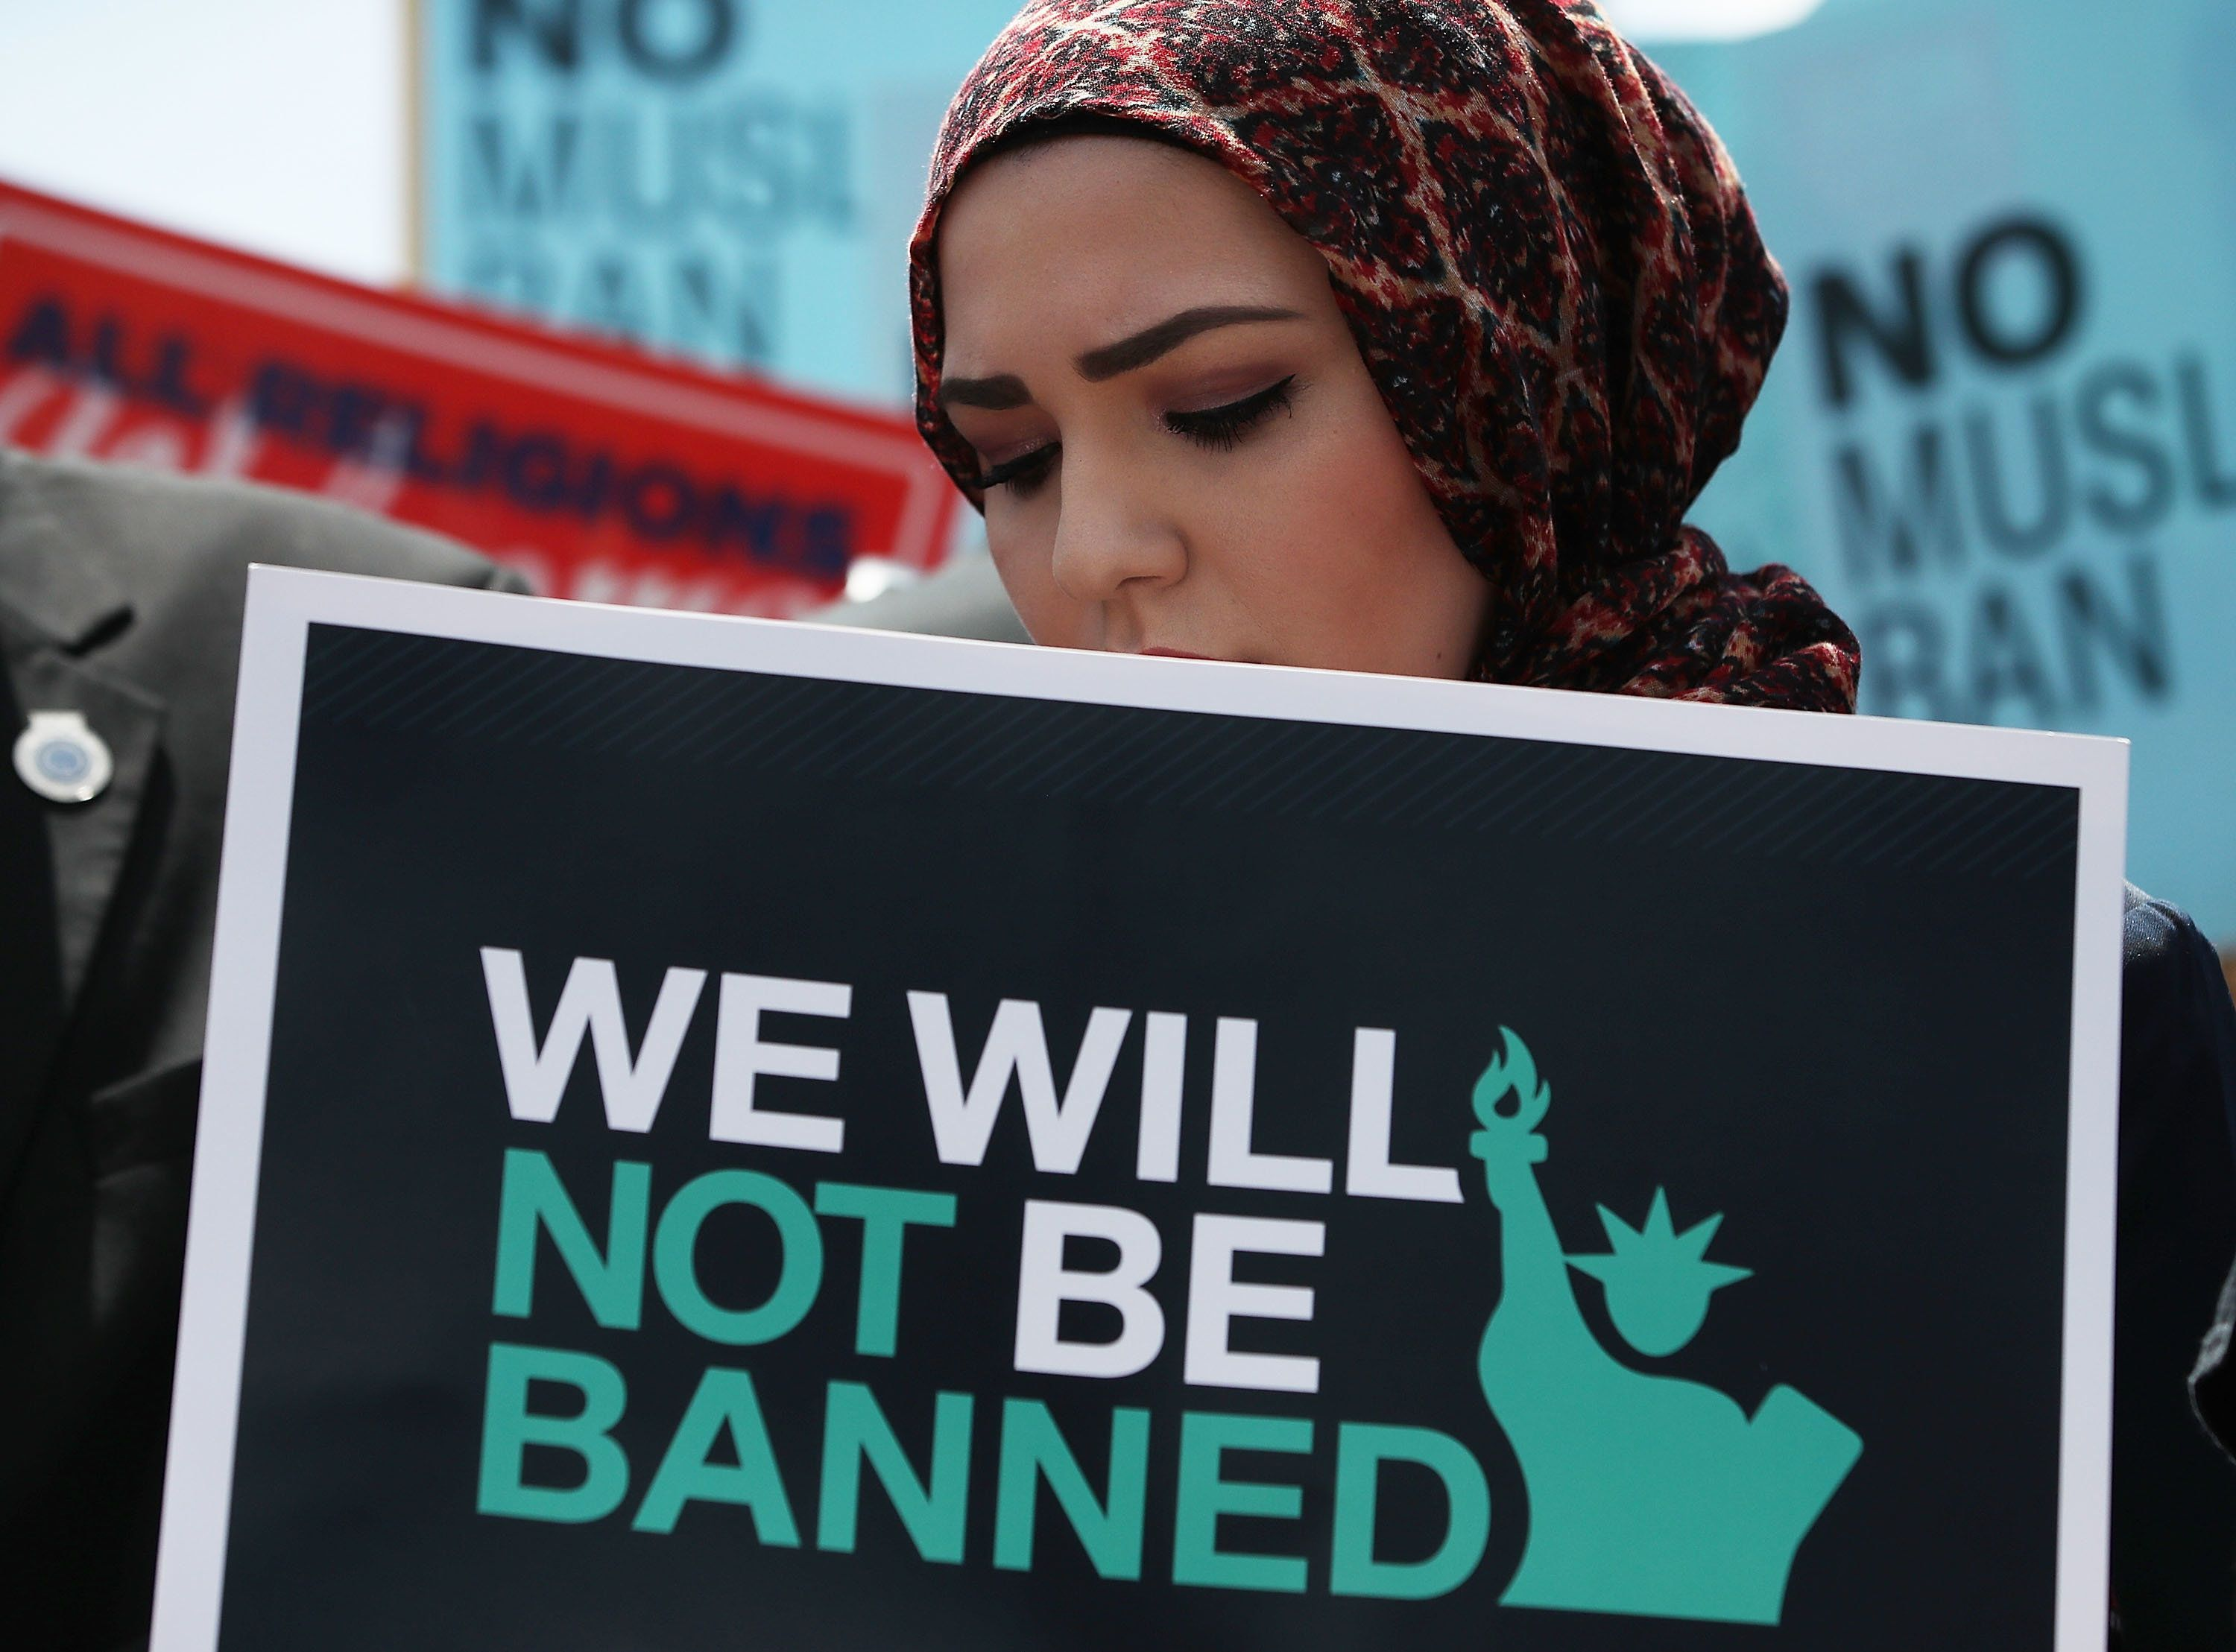 WASHINGTON, DC - JUNE 26: A women participates in demonstration against U.S. President Trump's travel ban as protesters gather outside the U.S. Supreme Court following a court issued immigration ruling June 26, 2018 in Washington, DC. The court issued a 5-4 ruling upholding U.S. President Donald Trump's travel ban imposing limits on travel from several primarily Muslim nations. (Photo by Mark Wilson/Getty Images)